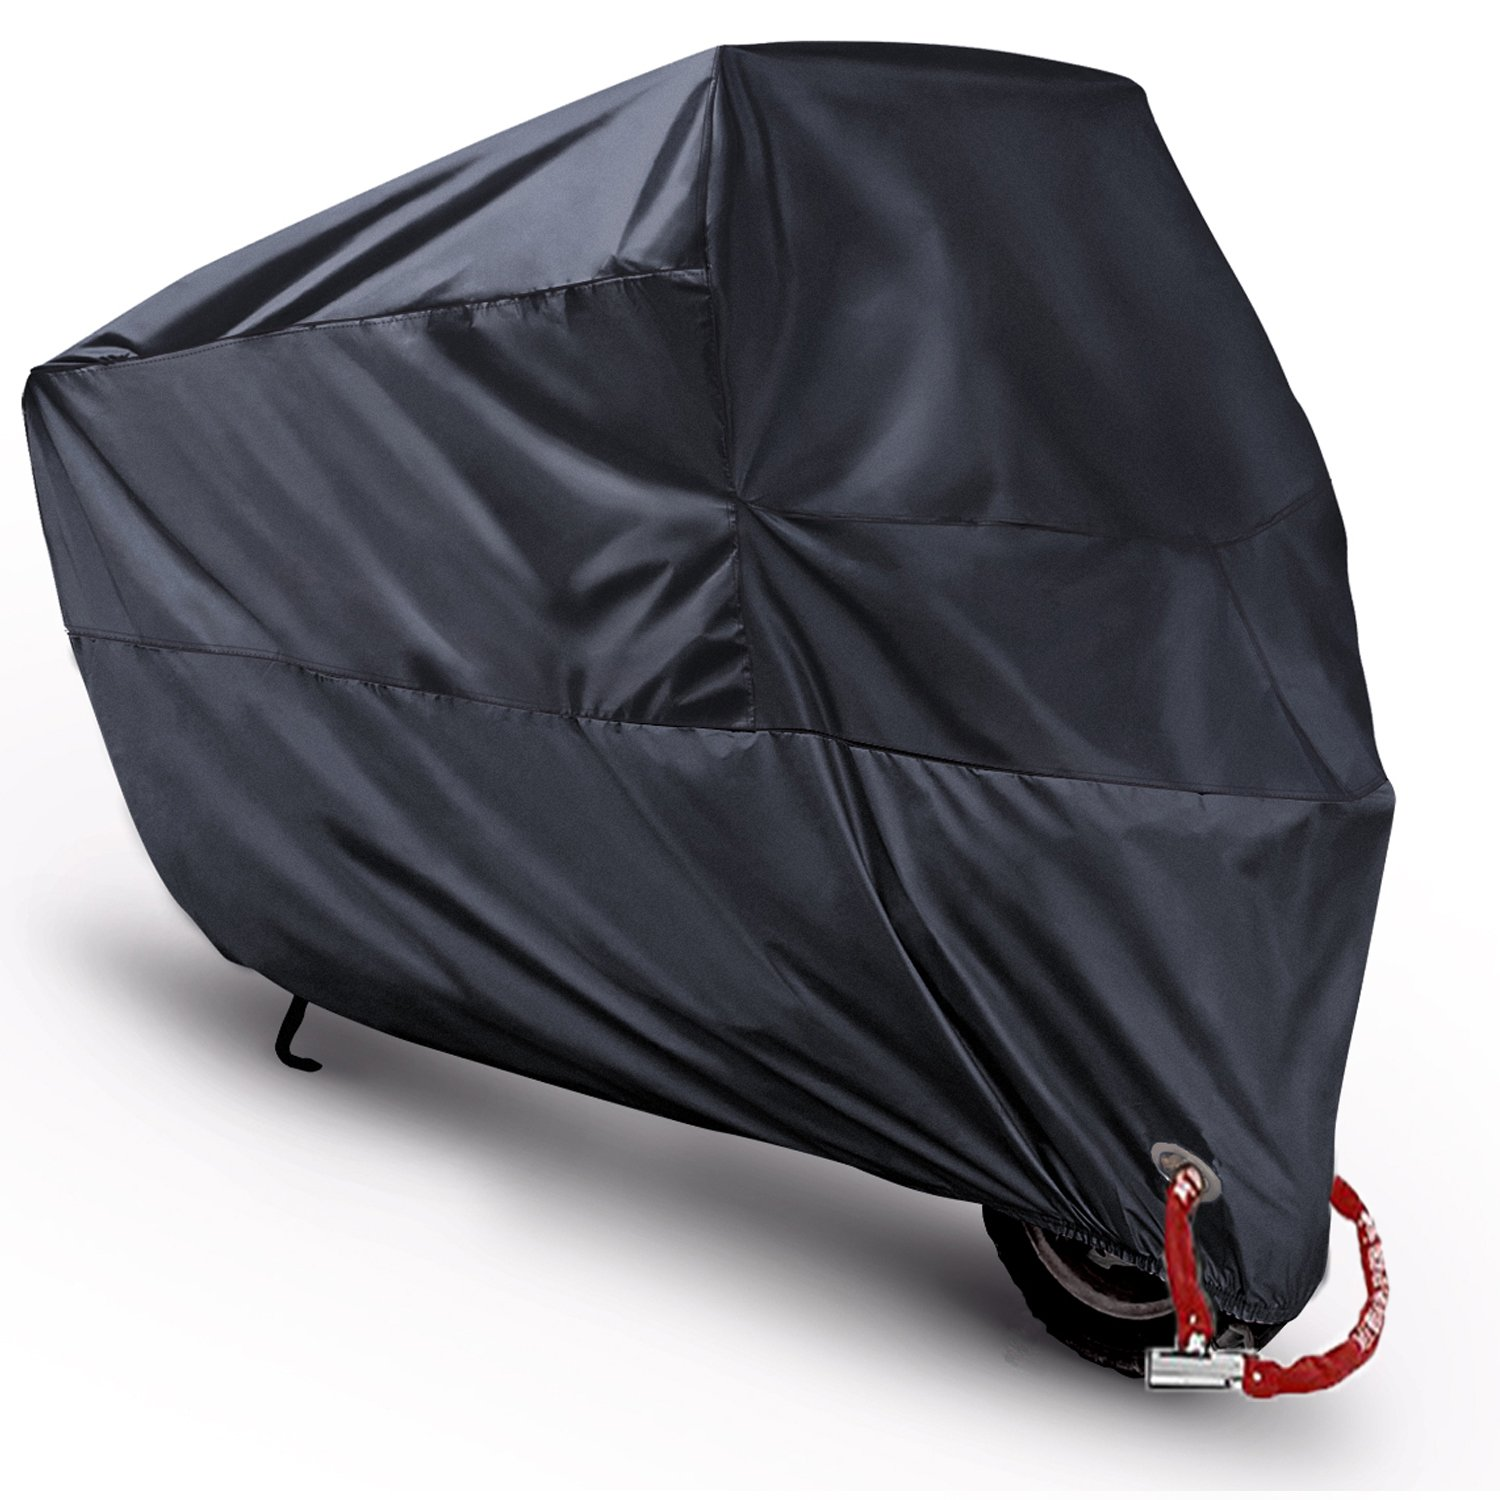 Motorcycle Cover Waterproof Motorbike Scooter Shelter Outdoor Dustproof All Weather Protection,Anti-theft Copper Lock Holes[Never Rust], for Honda Kawasaki Yamaha Suzuki Harley Davidson (XL 90''(Black) by MONOJOY